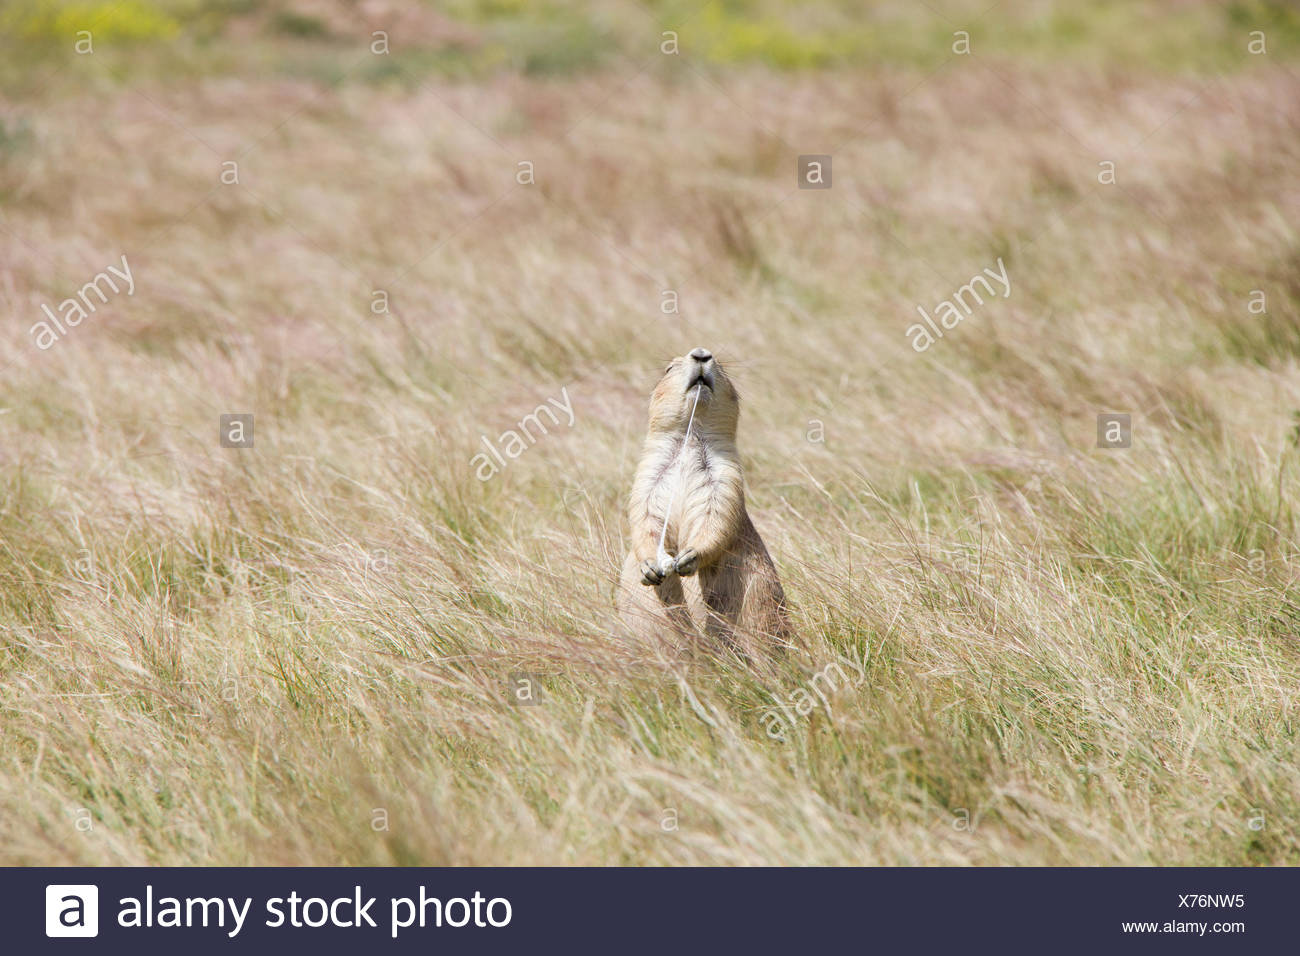 A prairie dog bites a piece of discarded gum. - Stock Image